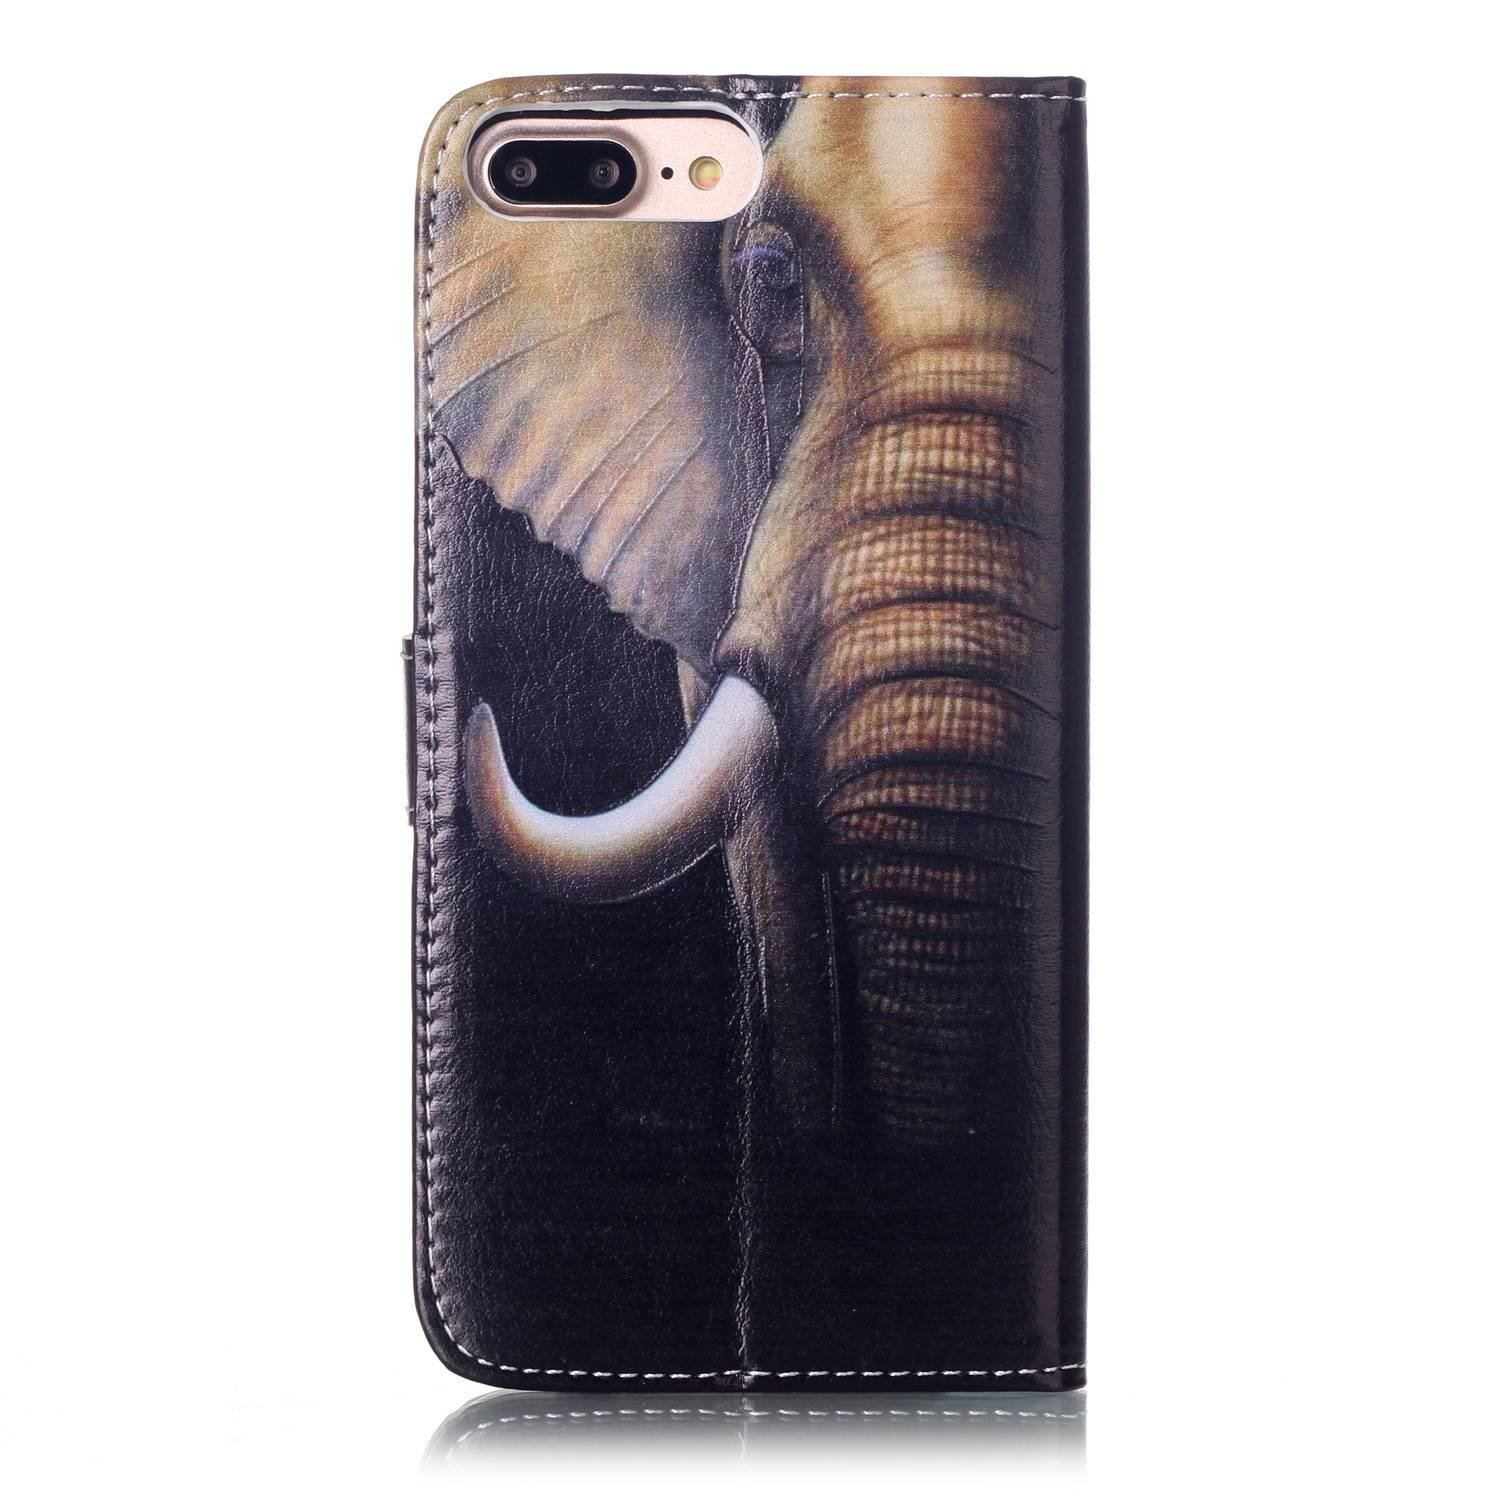 iPhone 8 Plus - Case, iPhone 7 Plus - Case, MerKuyom [Kickstand] Premium PU Leather Wallet Pouch Flap Cover Skin Case For Apple iPhone 7 Plus/iPhone 8 Plus 5.5'', Stylus (Cool Elephant Head) by MerKuyom (Image #6)